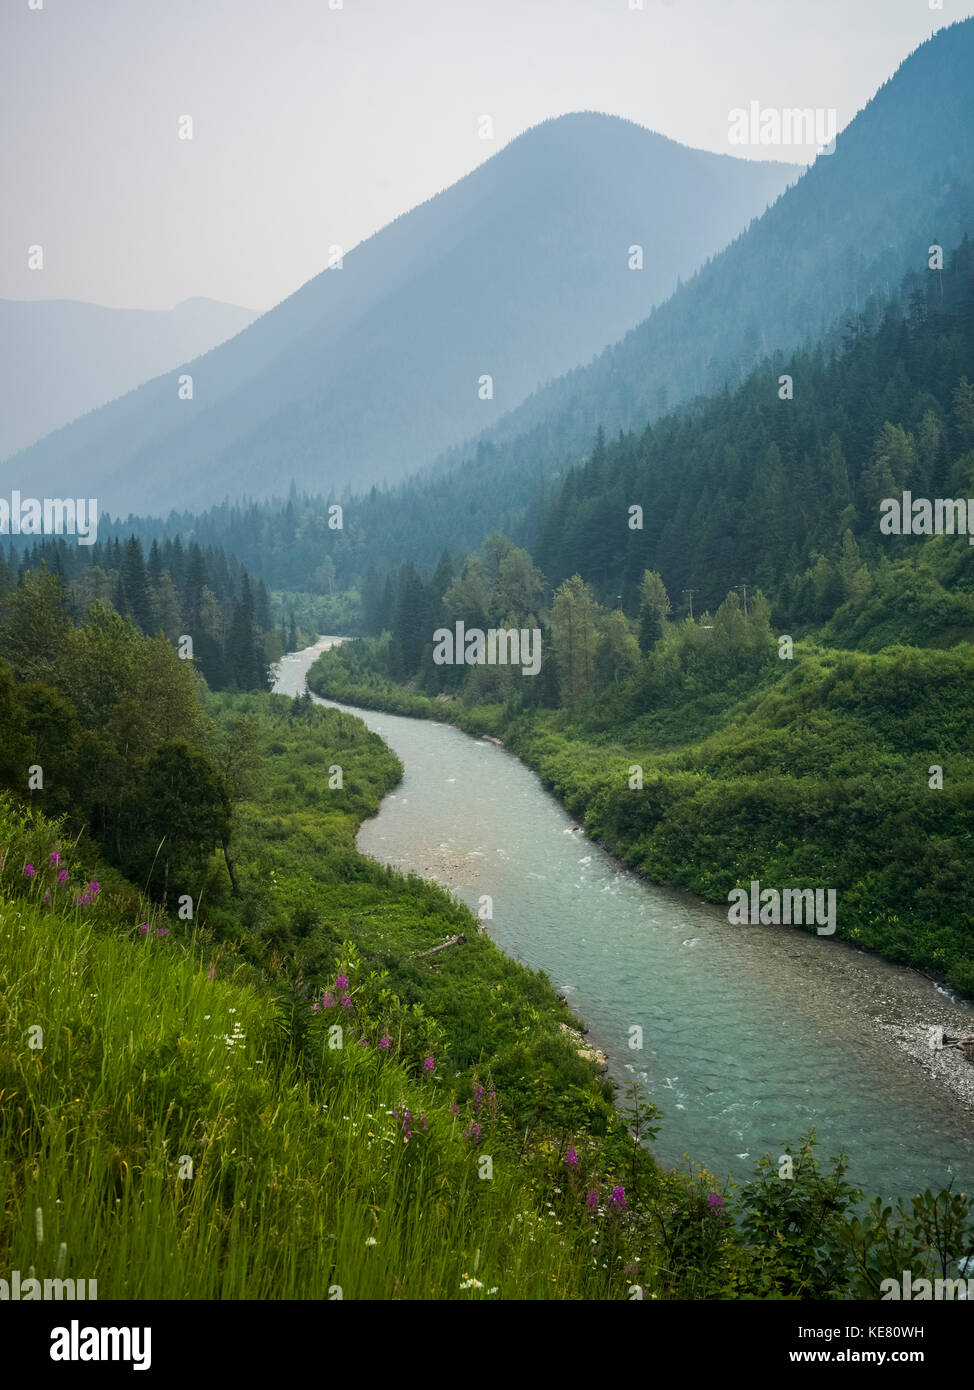 The Columbia River flowing through the Selkirk mountains with forests and wildflowers on the slopes; Revelstoke, - Stock Image